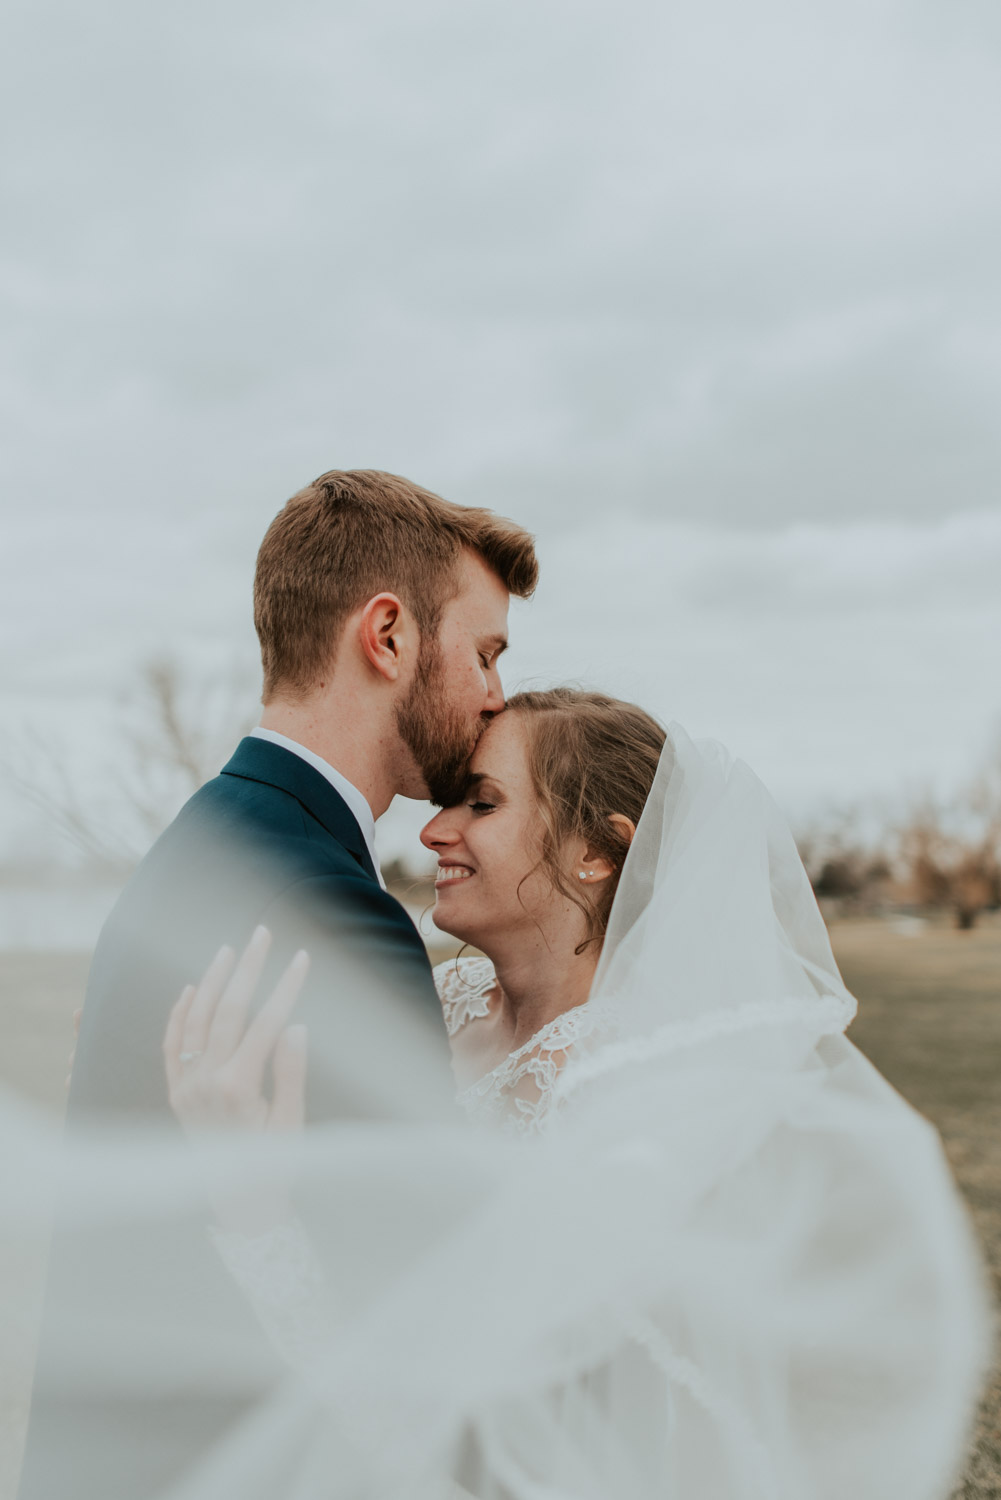 lindsey + daniel tied the knot in greeley colorado on march 30th 2019! a chilly spring wedding, the colors were starting to bud and the sun was just barely shining but it was exactly what they dreamt of! a day full of love and laughter!